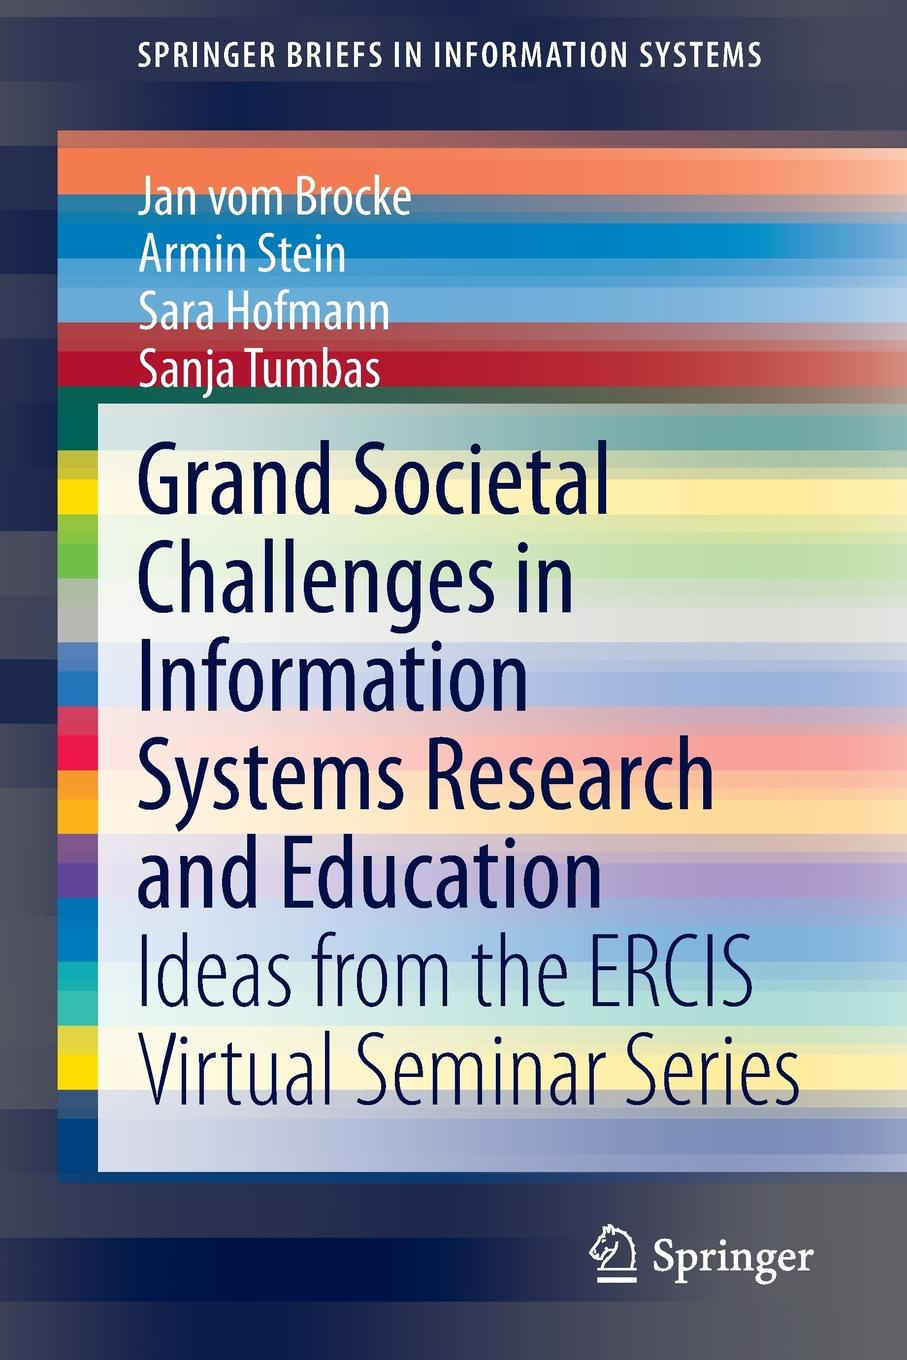 Jan vom Brocke, Armin Stein, Sara Hofmann Grand Societal Challenges in Information Systems Research and Education. Ideas from the ERCIS Virtual Seminar Series цена